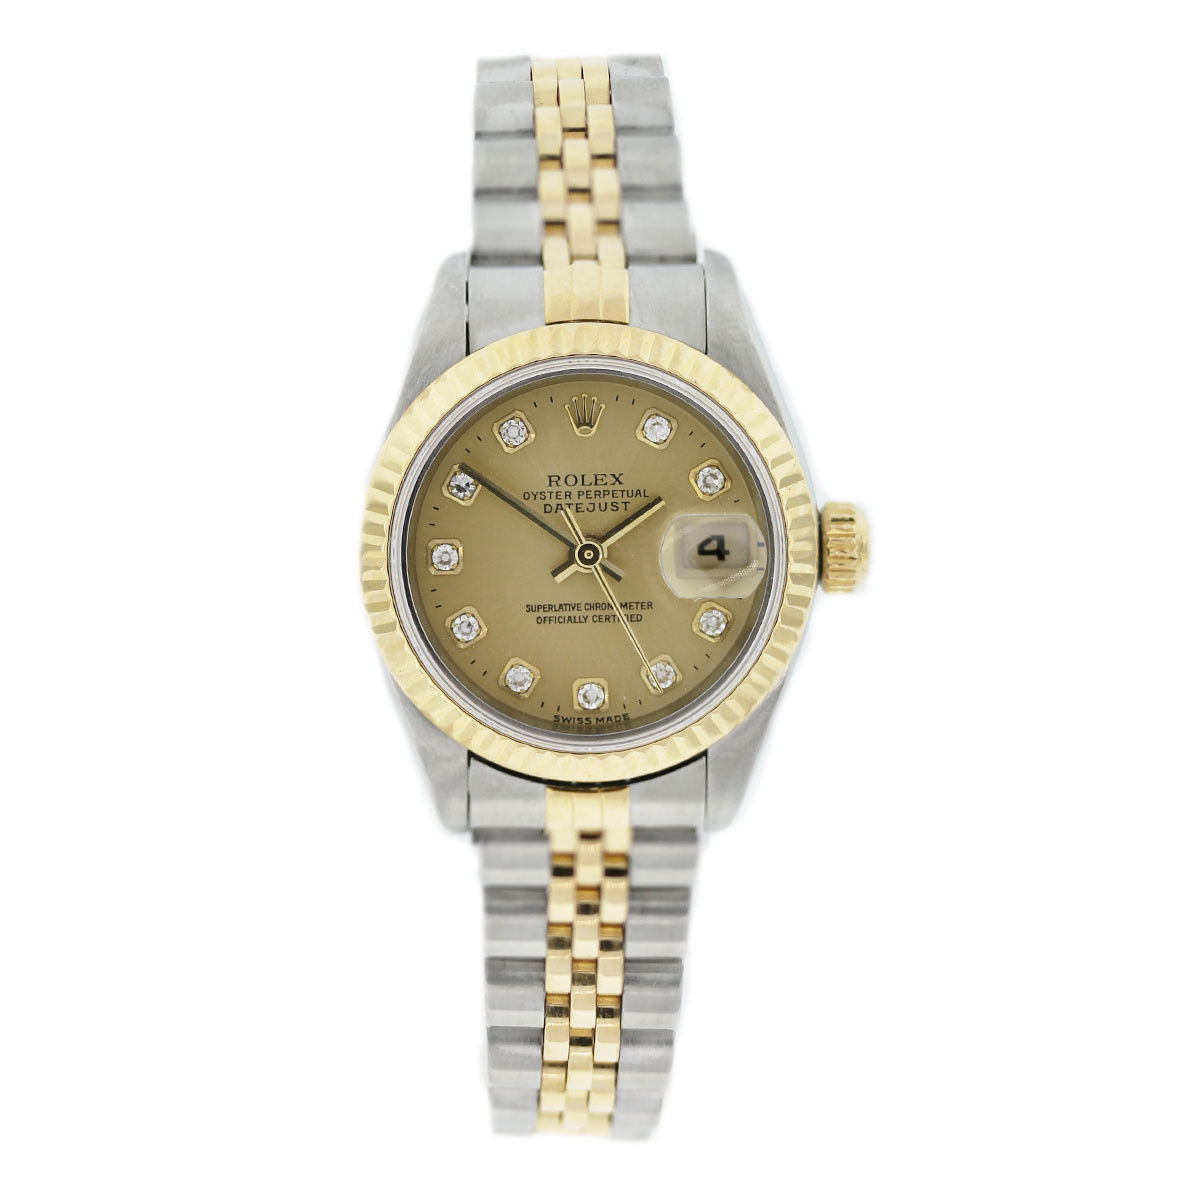 Two Tone Rolex Datejust Diamond Champagne Dial Watch